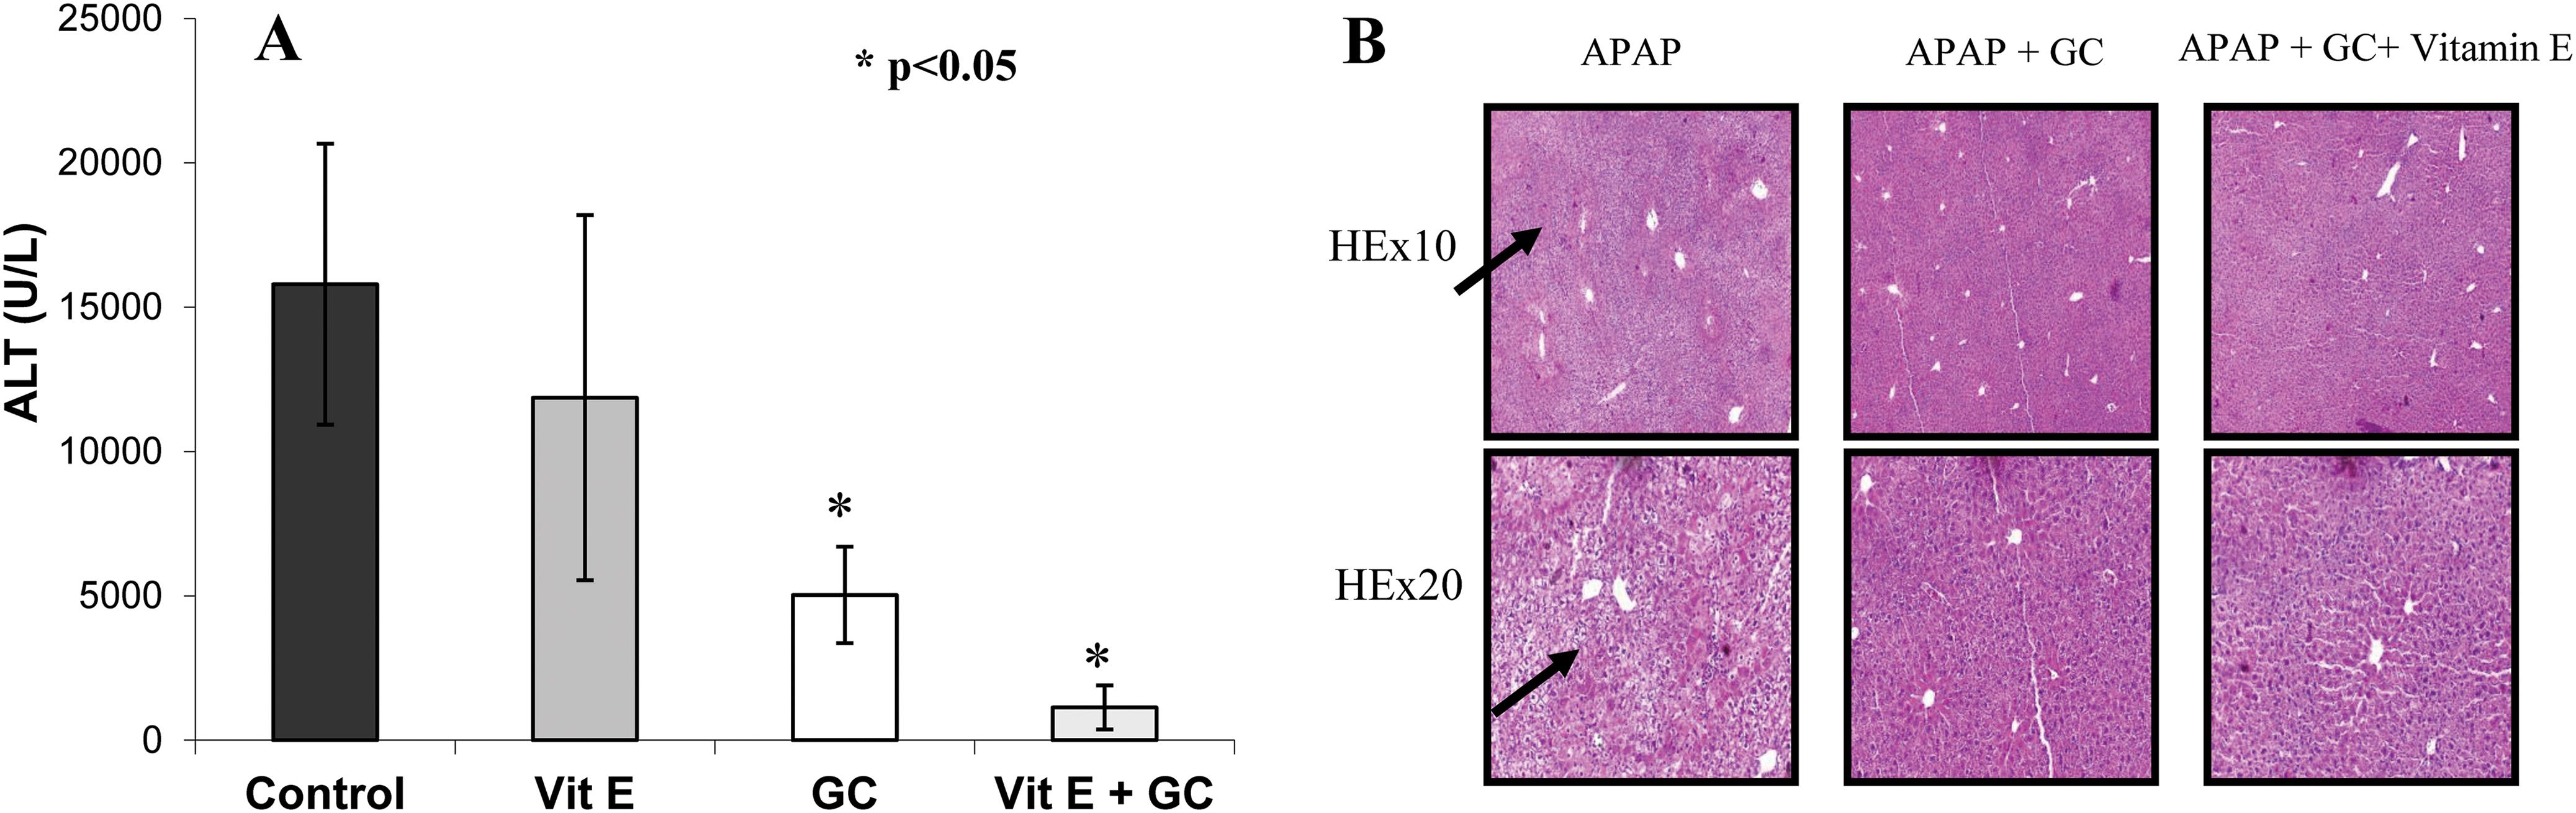 Synergistic effect of β-glucosylceramide with vitamin E on alleviation of the APAP-mediated liver damage.